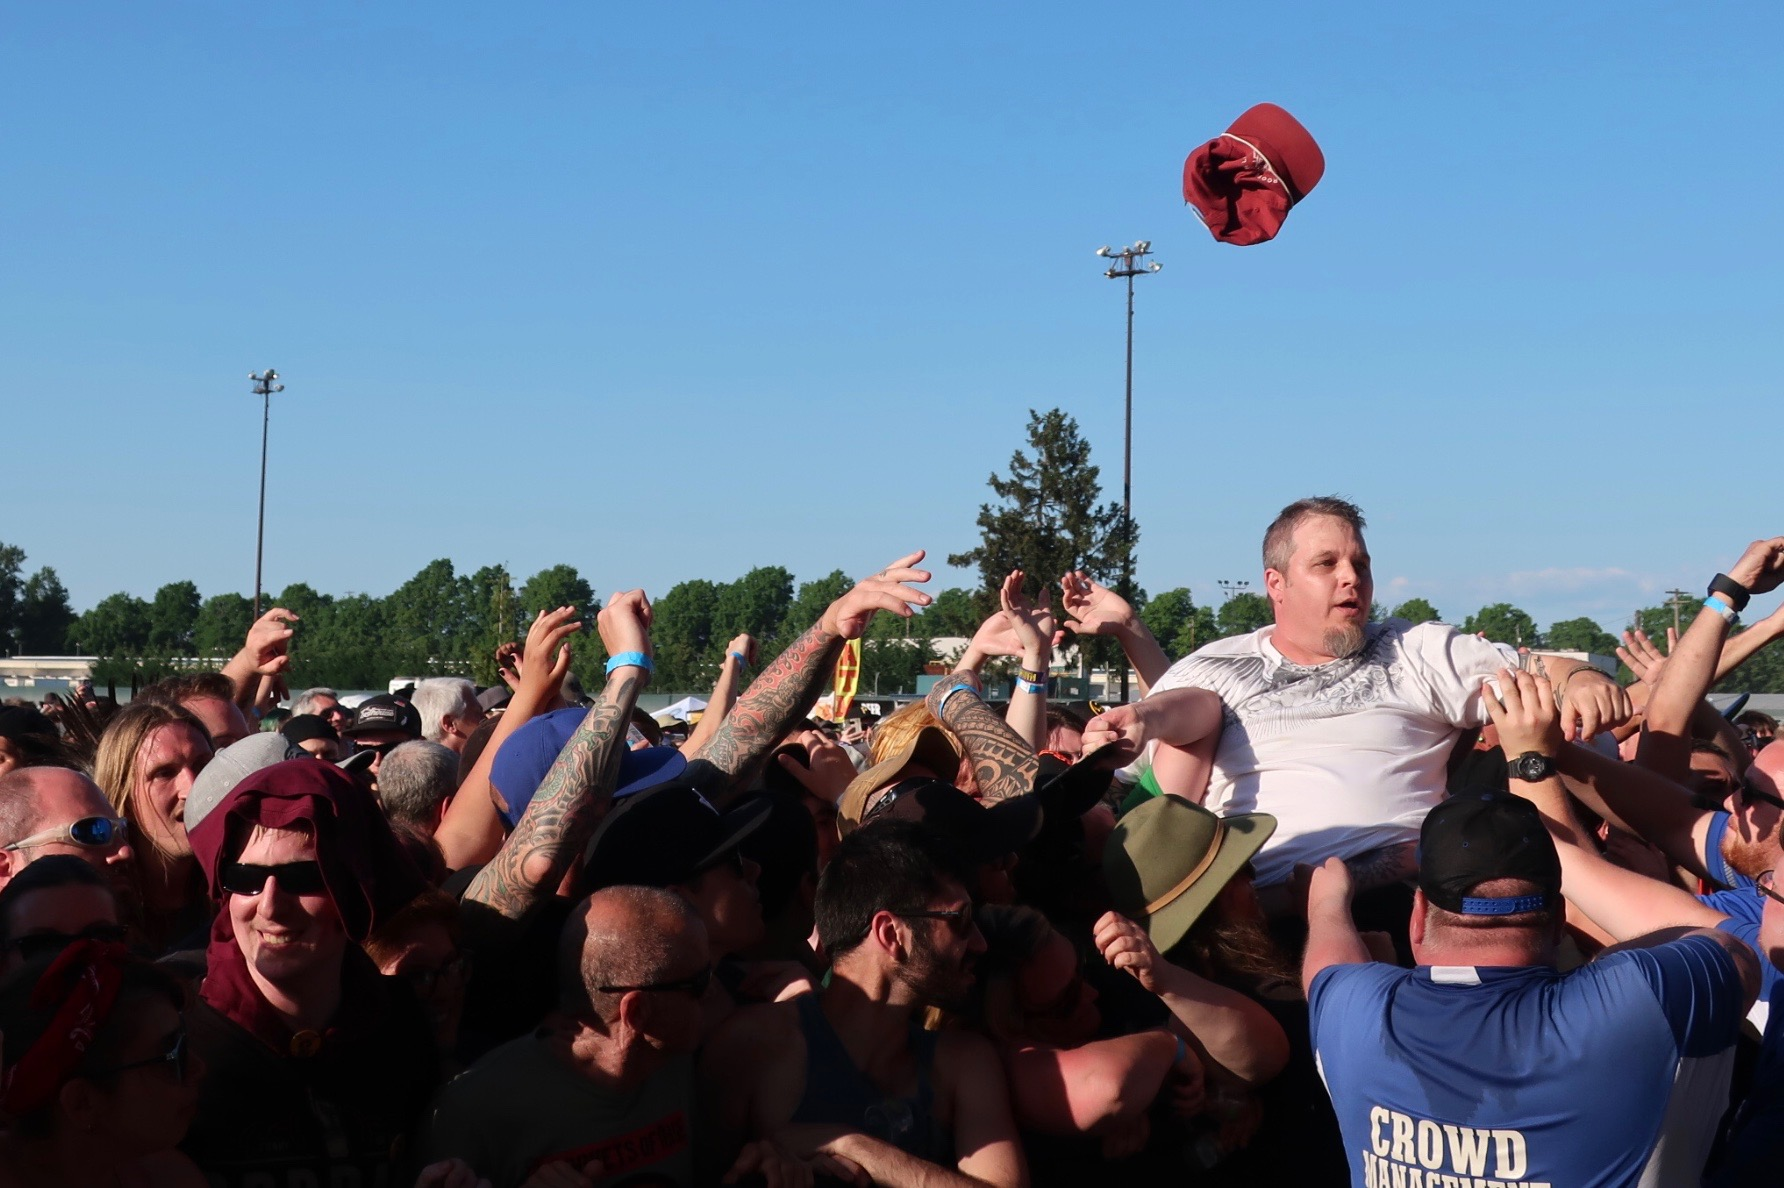 Crowd surfers during the Pennywise set at the 2018 stop of Sabroso Craft Beer, Taco & Music Festival in Portland, Oregon.